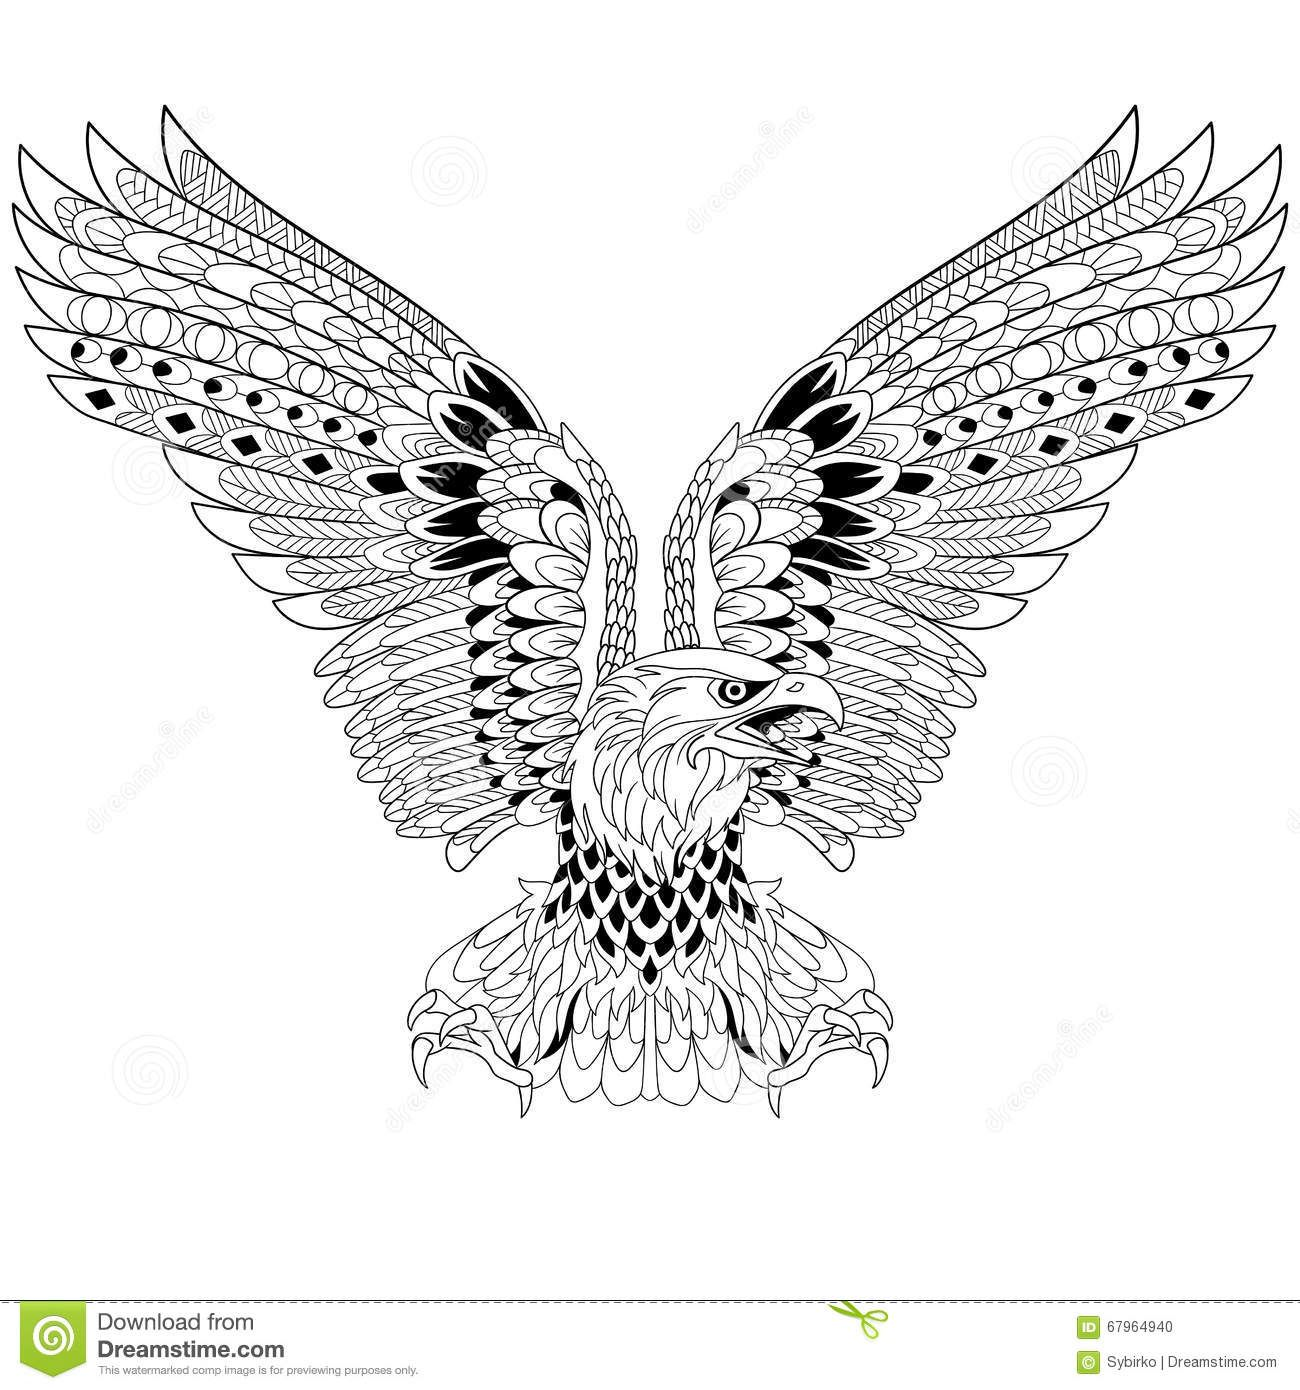 Zentangle Stylized Eagle Download From Over 42 Million High